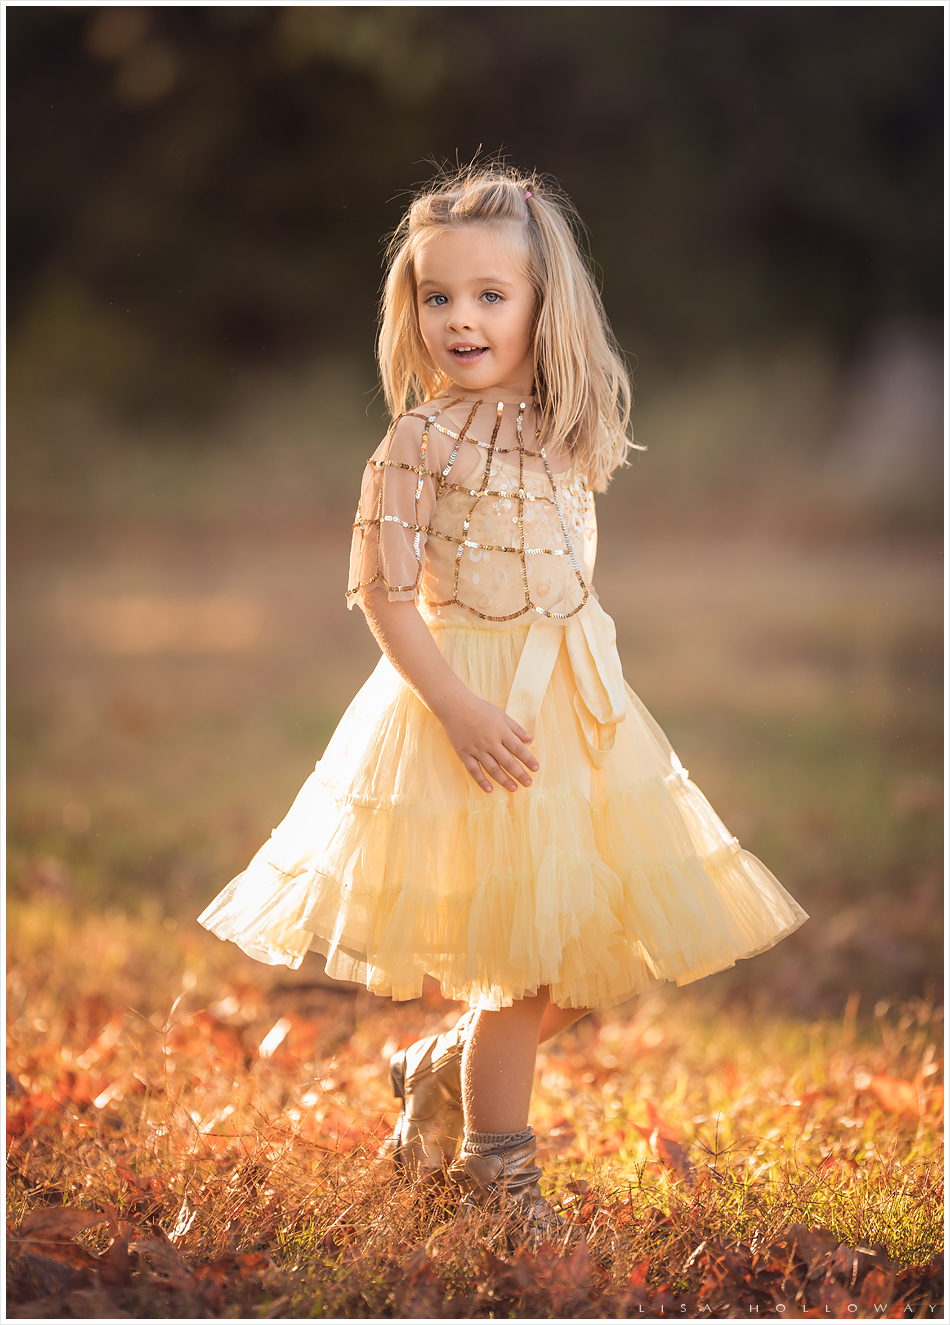 Adorable little girl in yellow dress twirls in the sun. LJHolloway Photography is a Las Vegas Family Photographer.